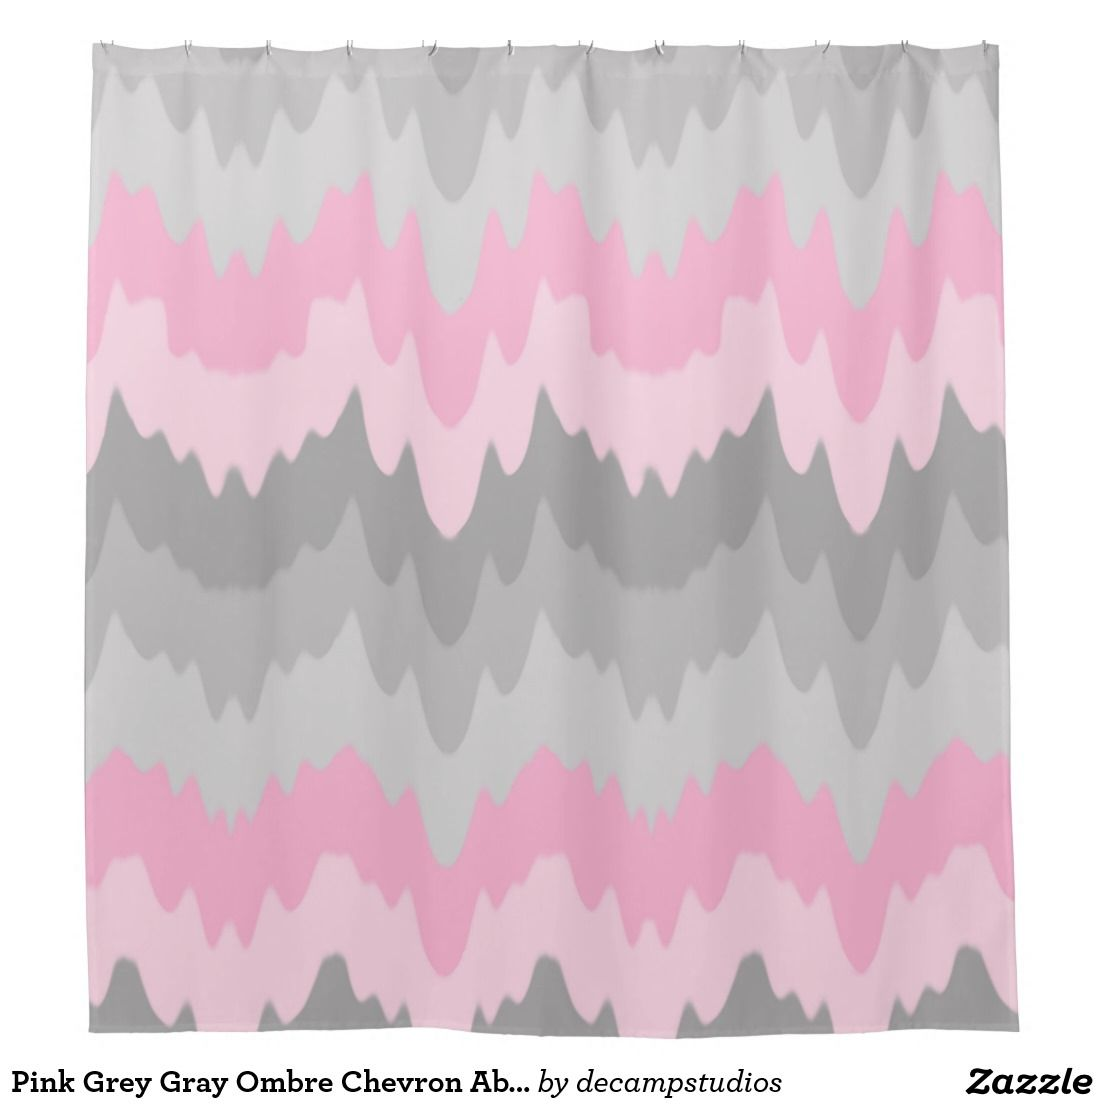 Pink Grey Gray Ombre Chevron Abstract Zigzag Girl Shower